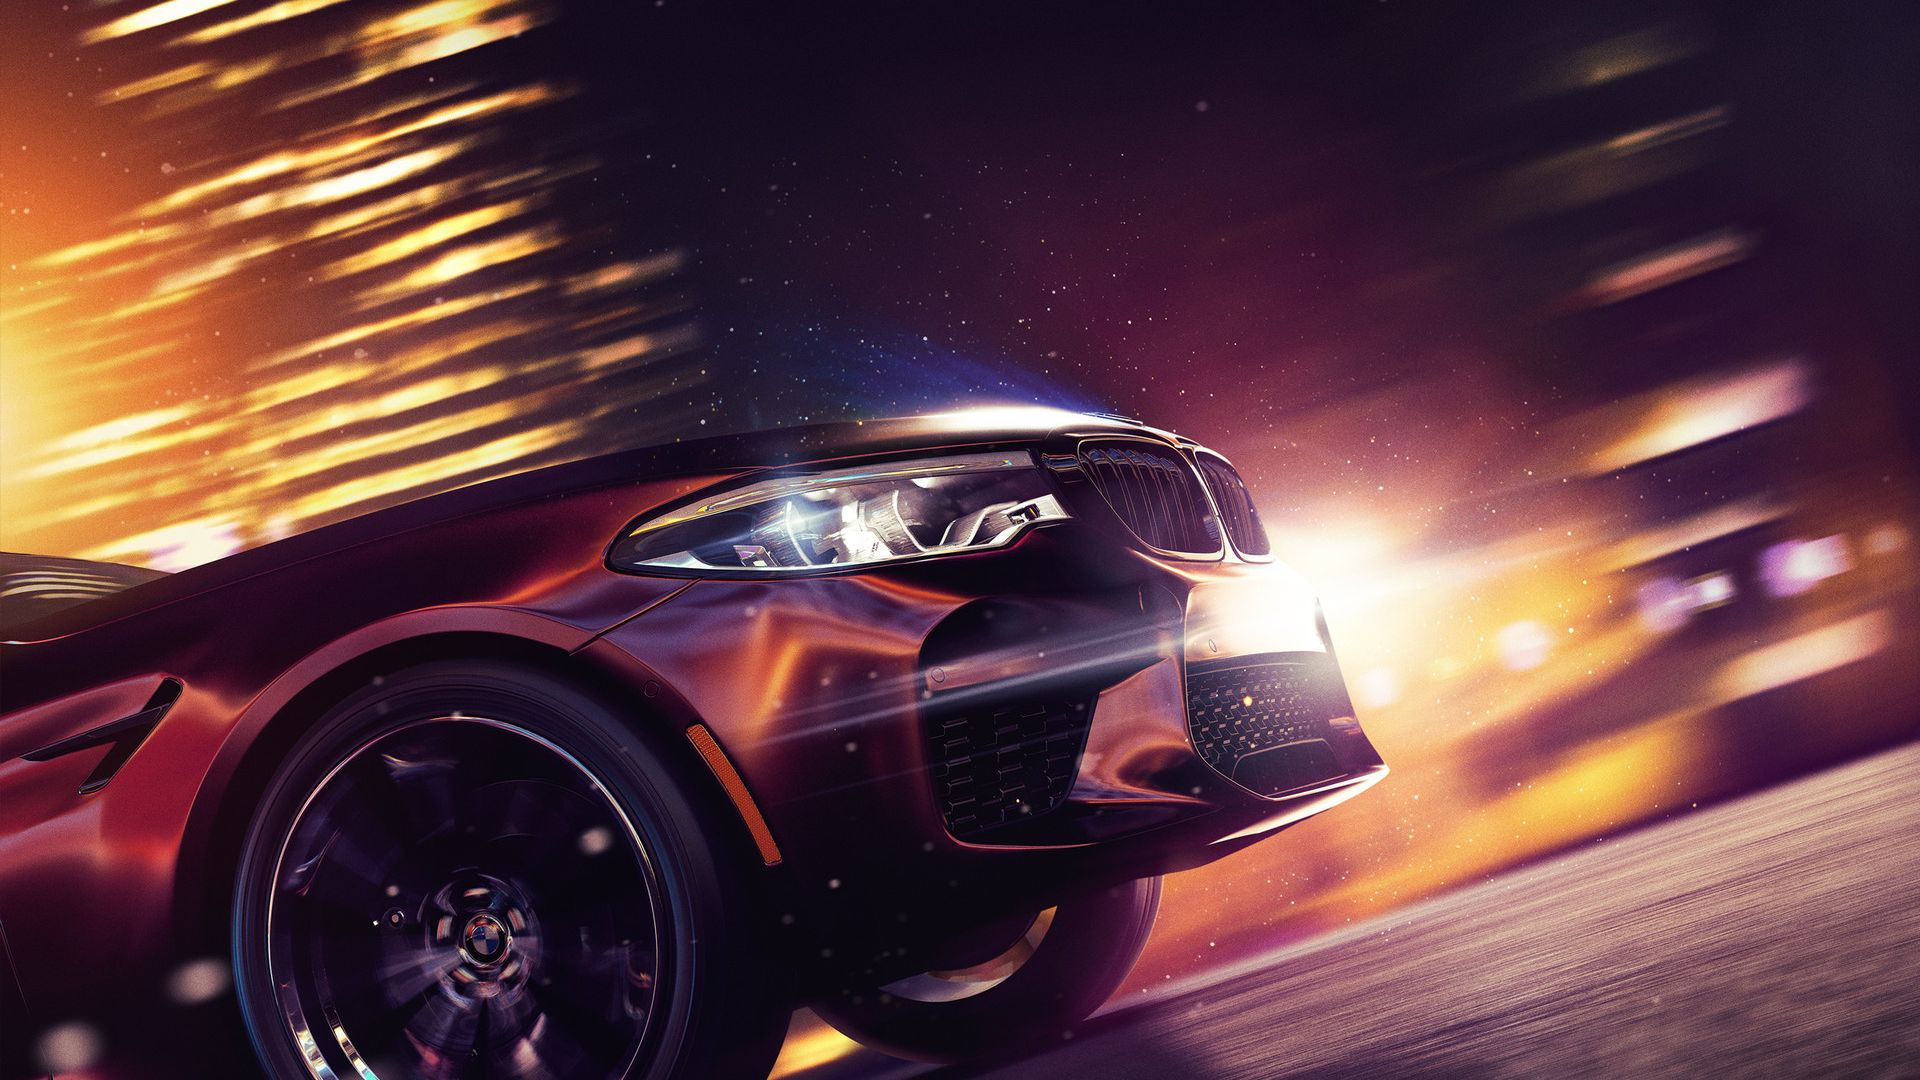 Wallpaper Need for speed payback, video game, wheel, poster